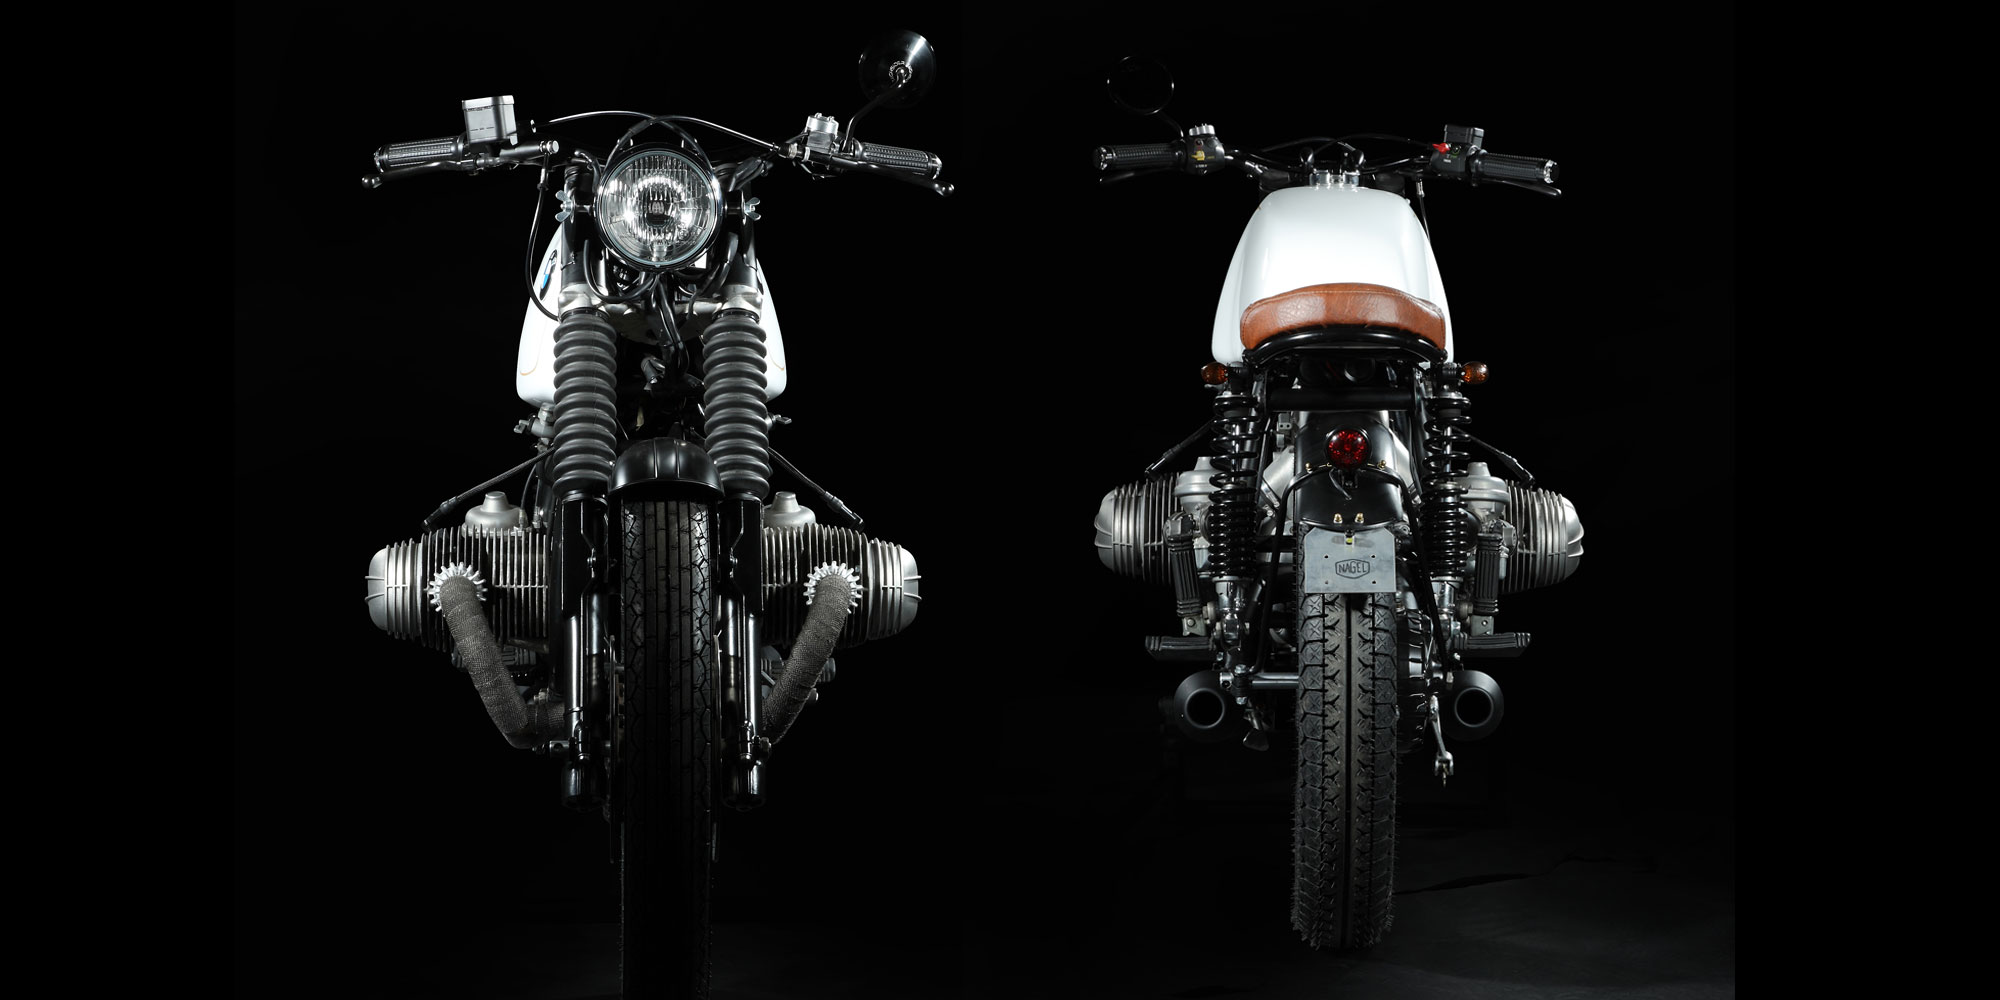 BMW R100 Heritage Classic